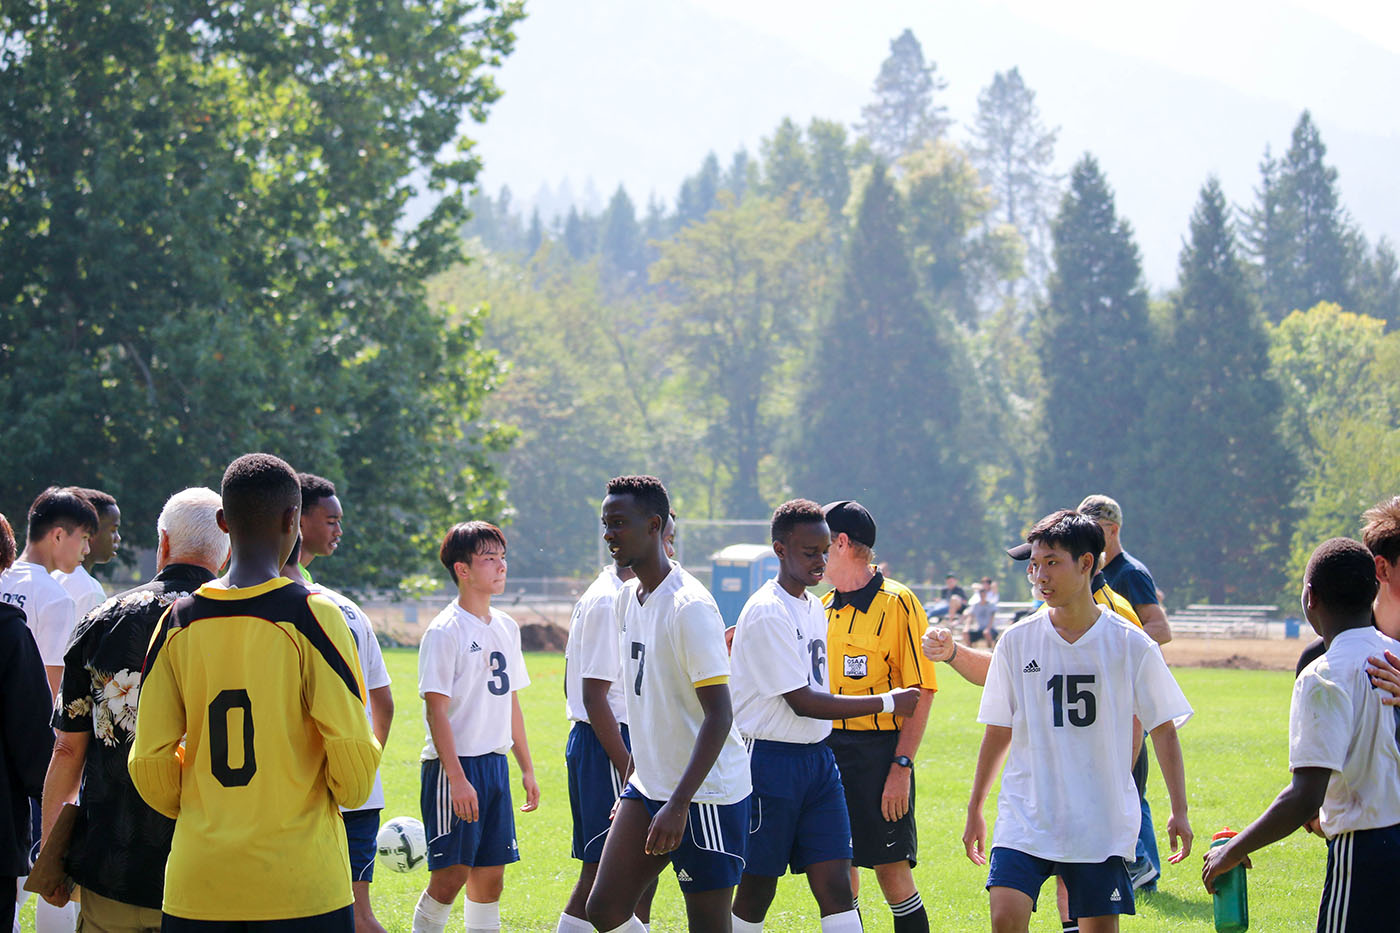 Boys Soccer team after a good game at Christian Boarding School Canyonville Christian Academy, in southern Oregon